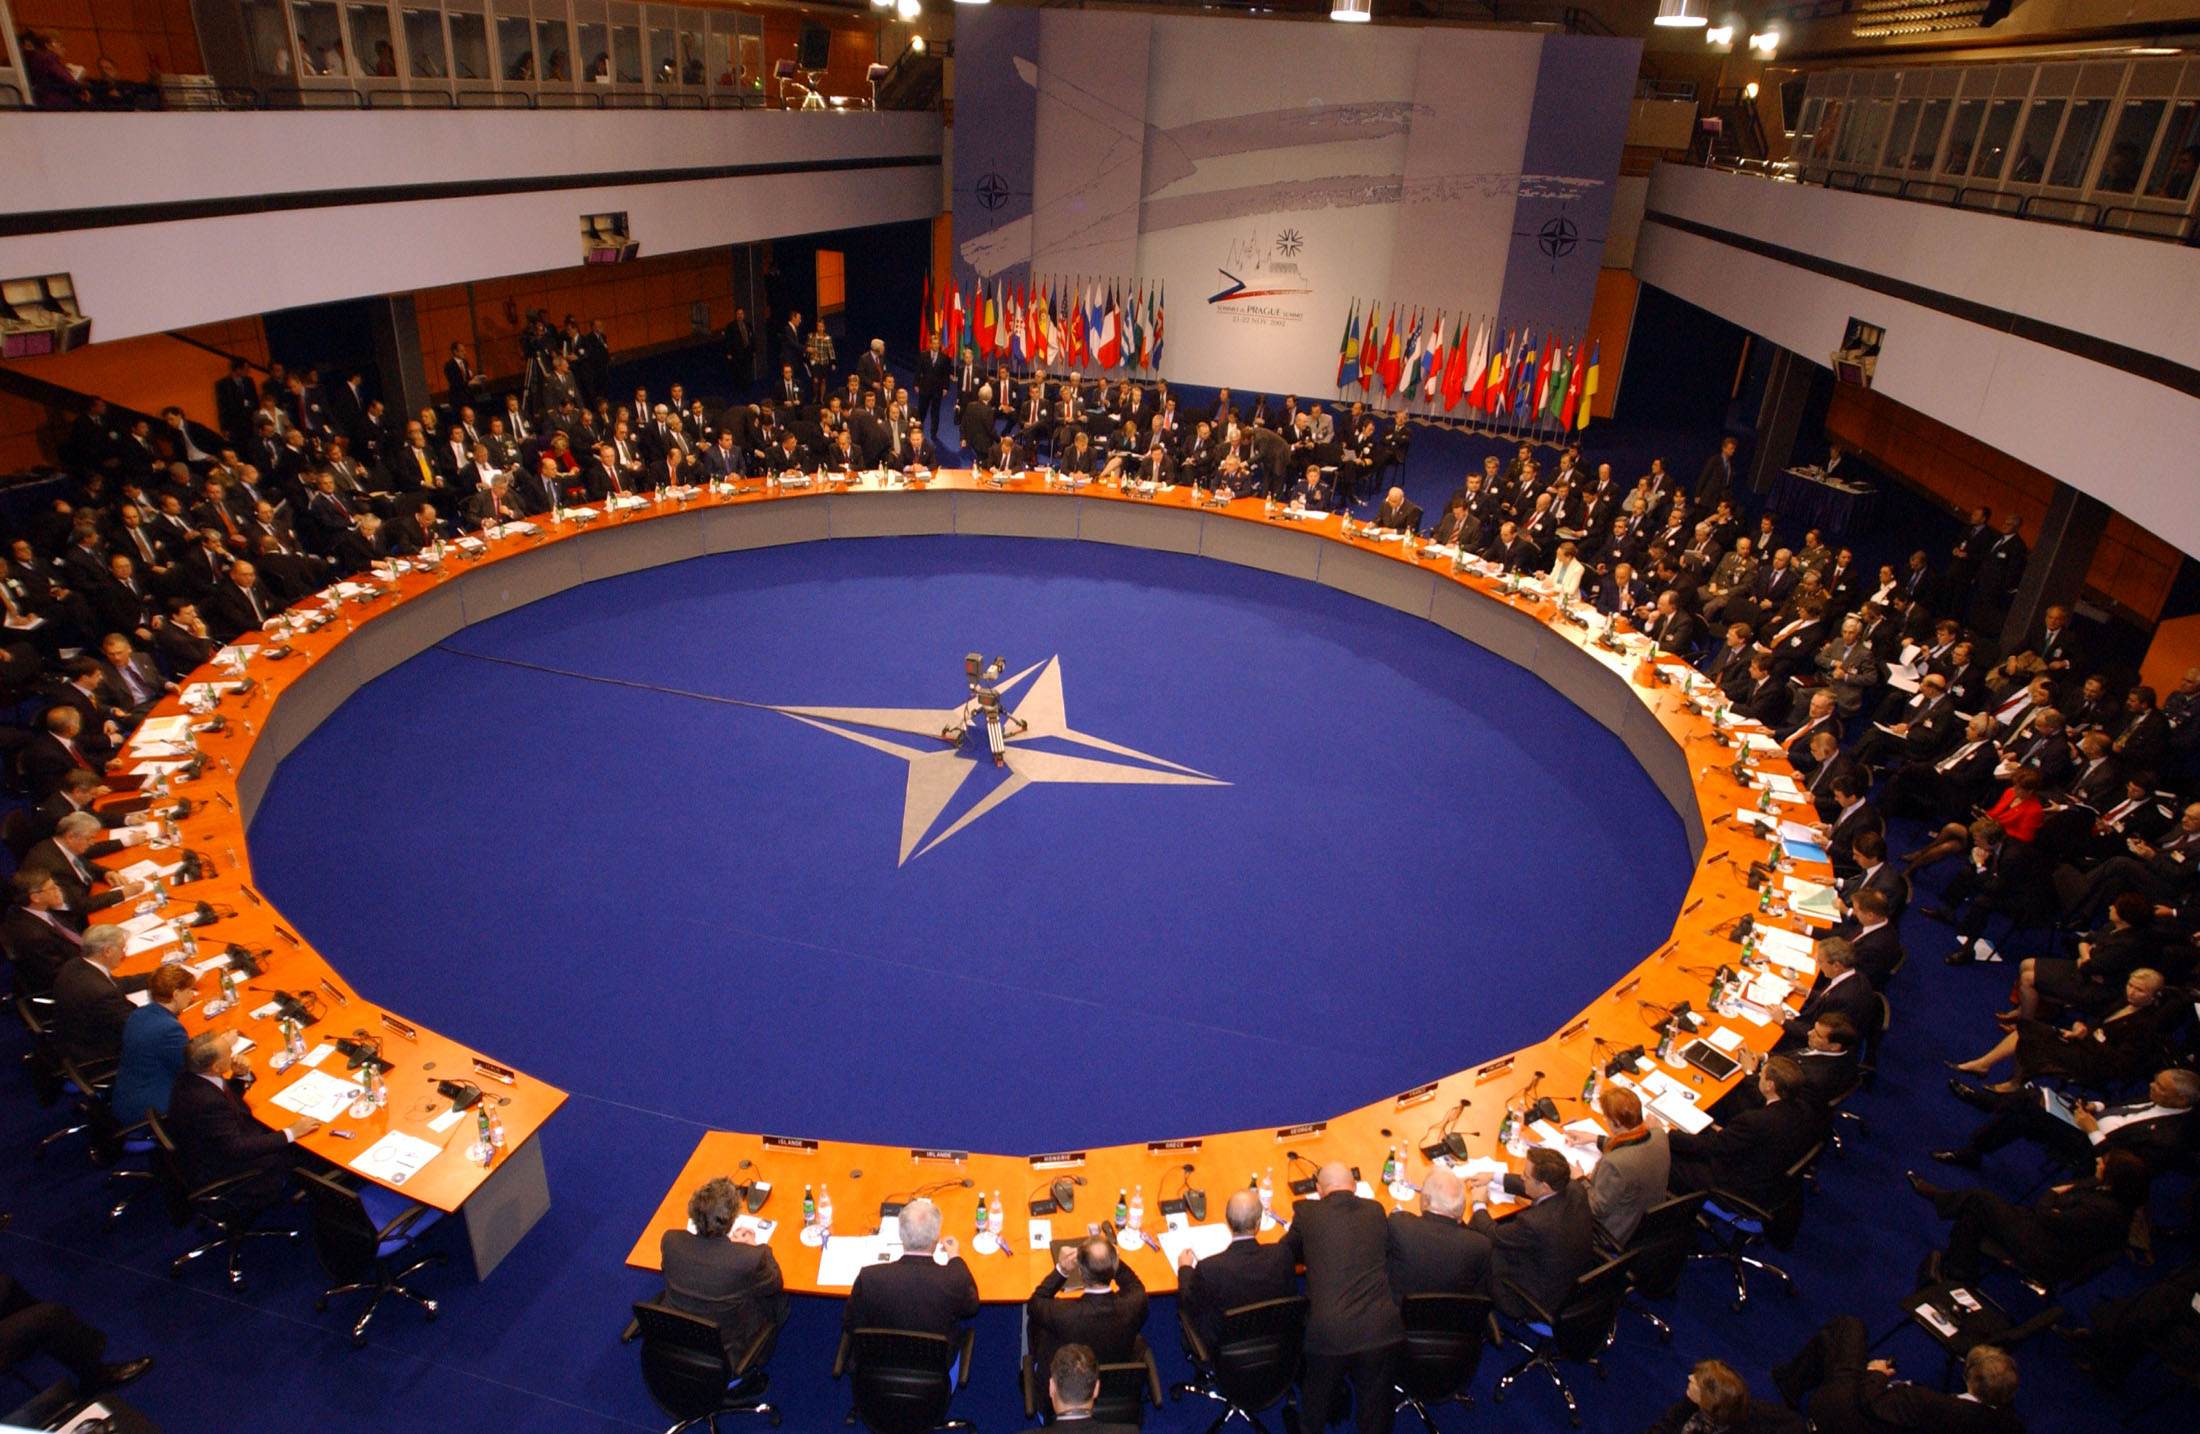 b021122w 22th November 2002 NATO Summit Meeting in Prague, Czech Republic North Atlantic Council Meeting at the level of Heads of State and Government. Euro-Atlantic Partnership Council Summit Meeting. - General View